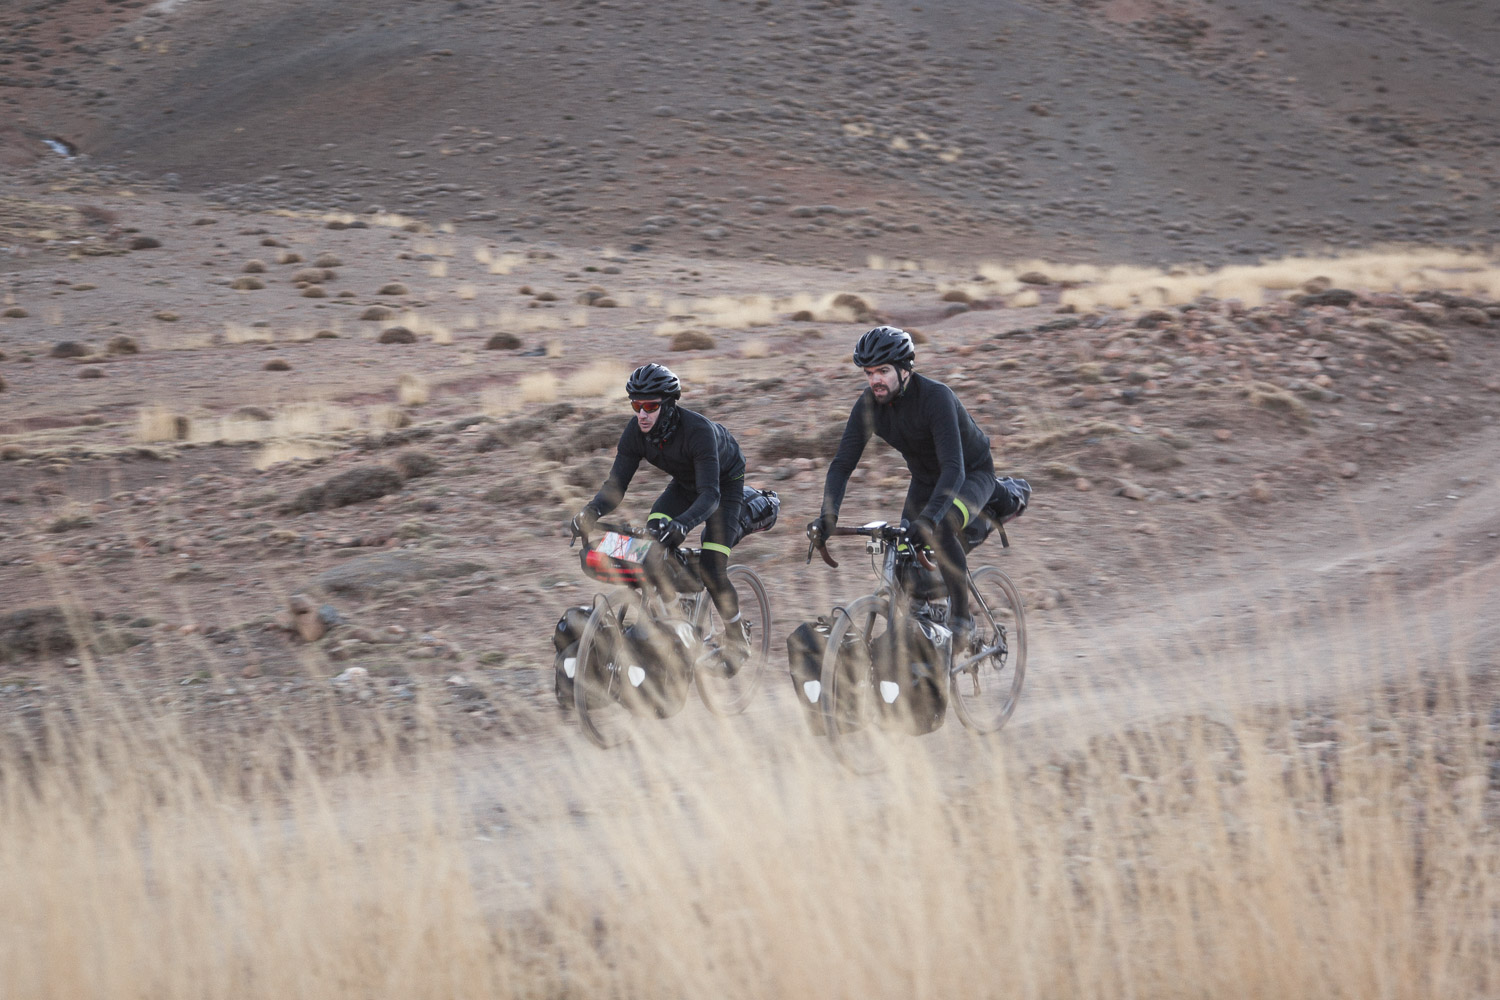 8bar bikes adventures morocco gravel 20151213 0197 bearbeitet - 8bar Adventures - Morocco - High Atlas - Part 2/2